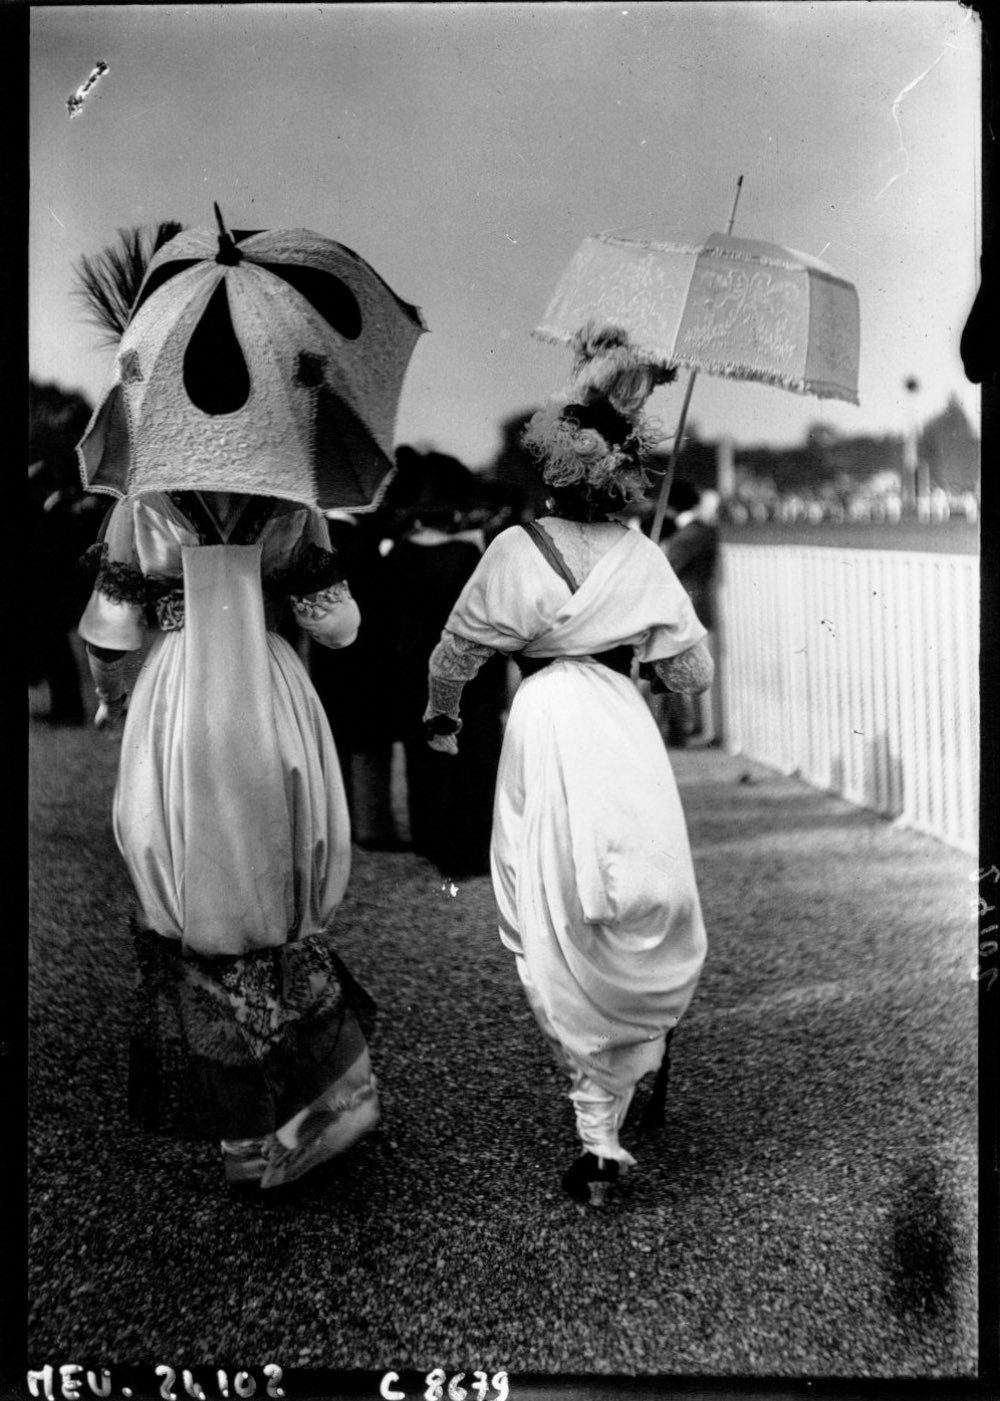 1912 Hobble skirts and parasols